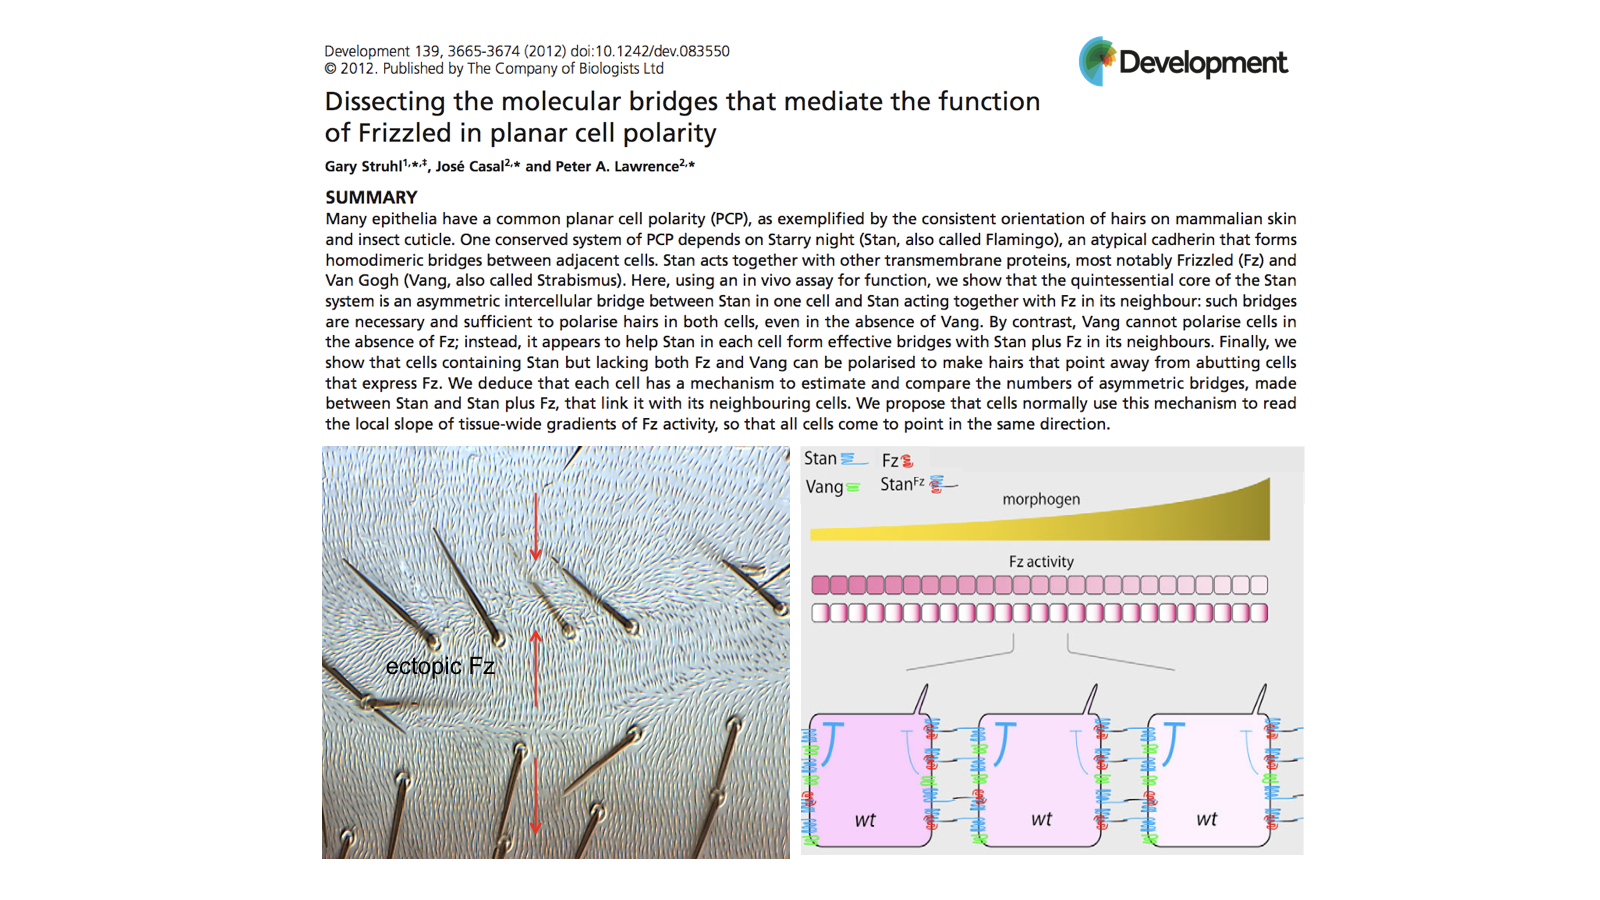 Dissecting the molecular bridges that mediate the function of Frizzled in planar cell polarity